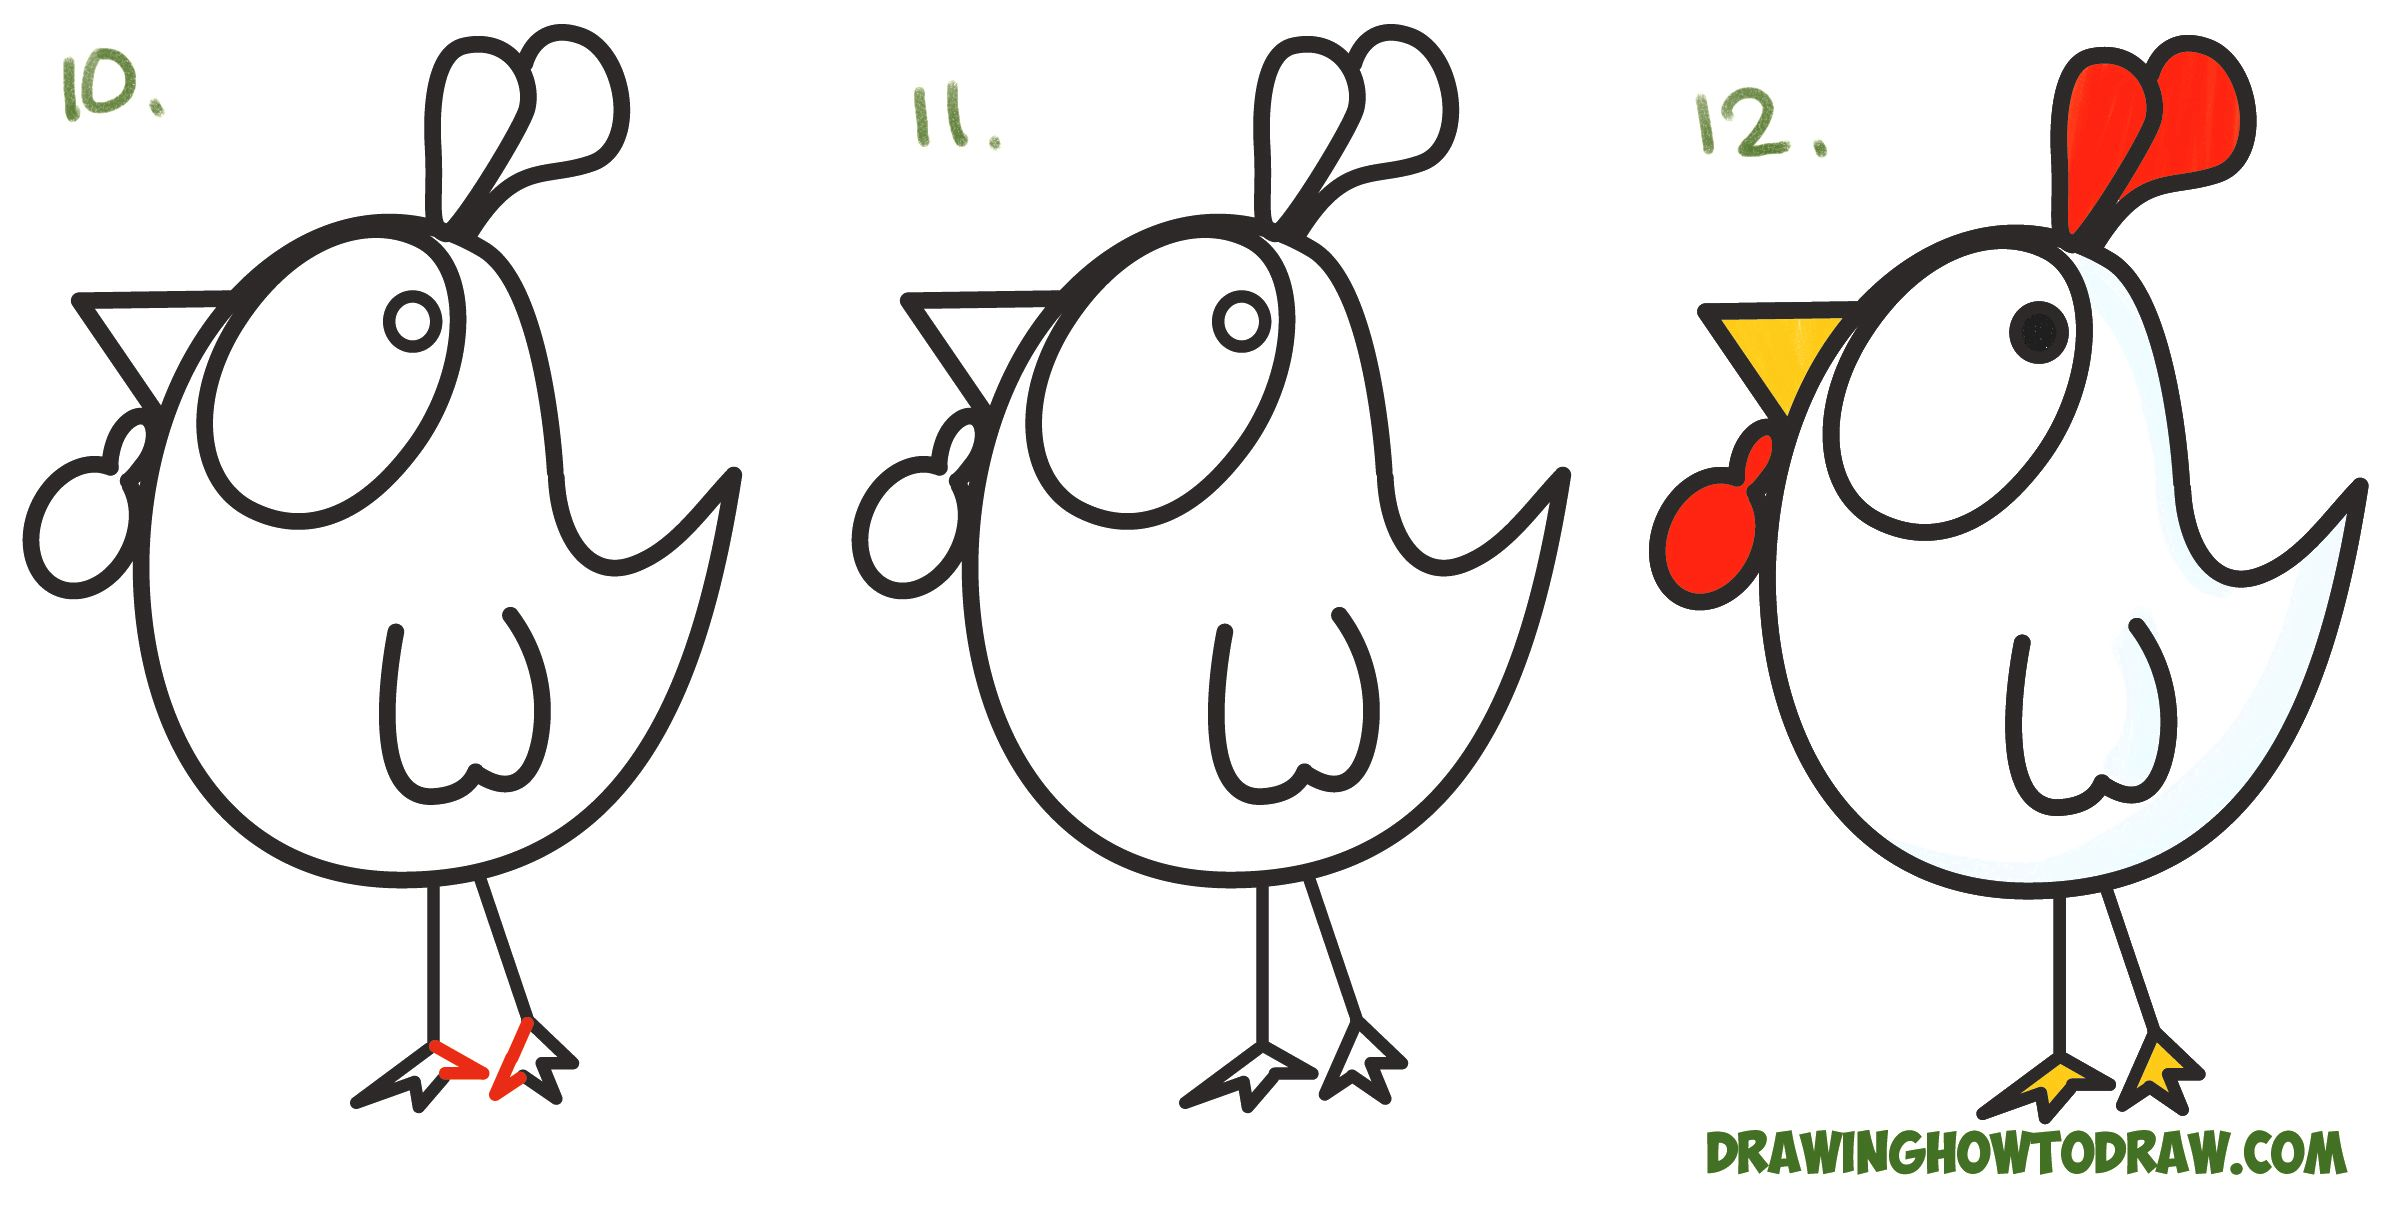 How you can draw a poultry, thanksgiving day, easy step-by-step drawing tutorial Ocean and